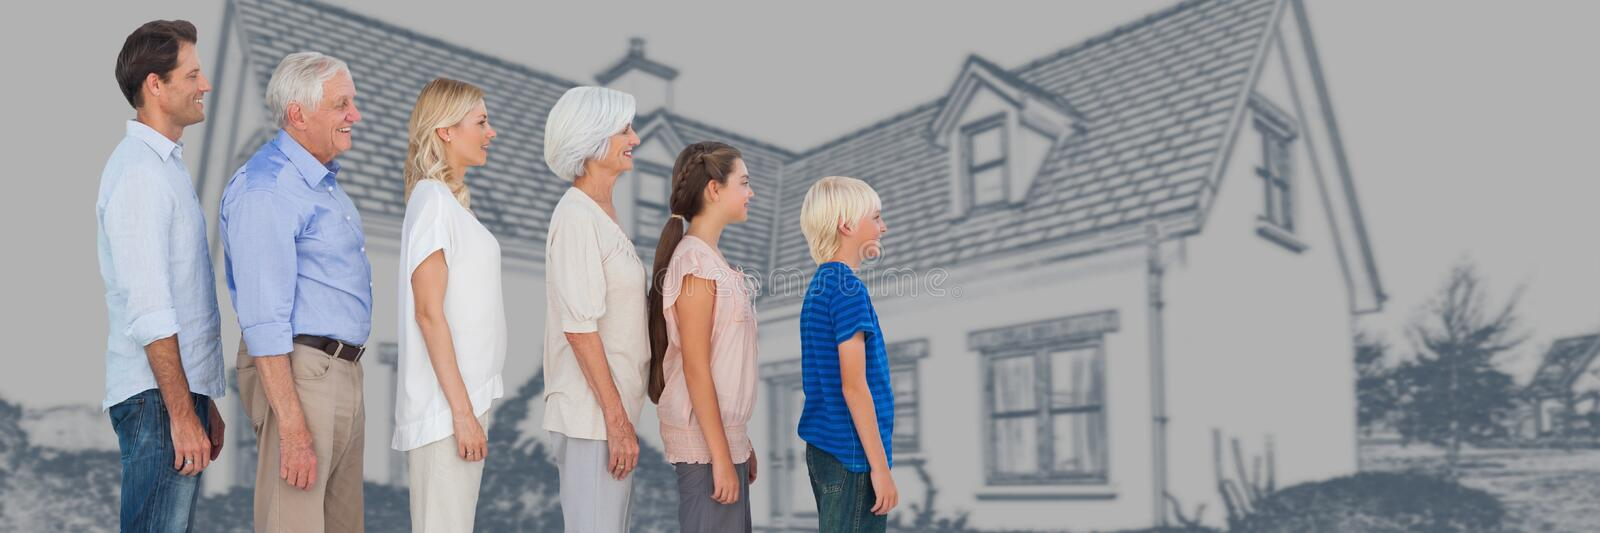 Family generations descending in height in front of house drawing sketch royalty free stock images